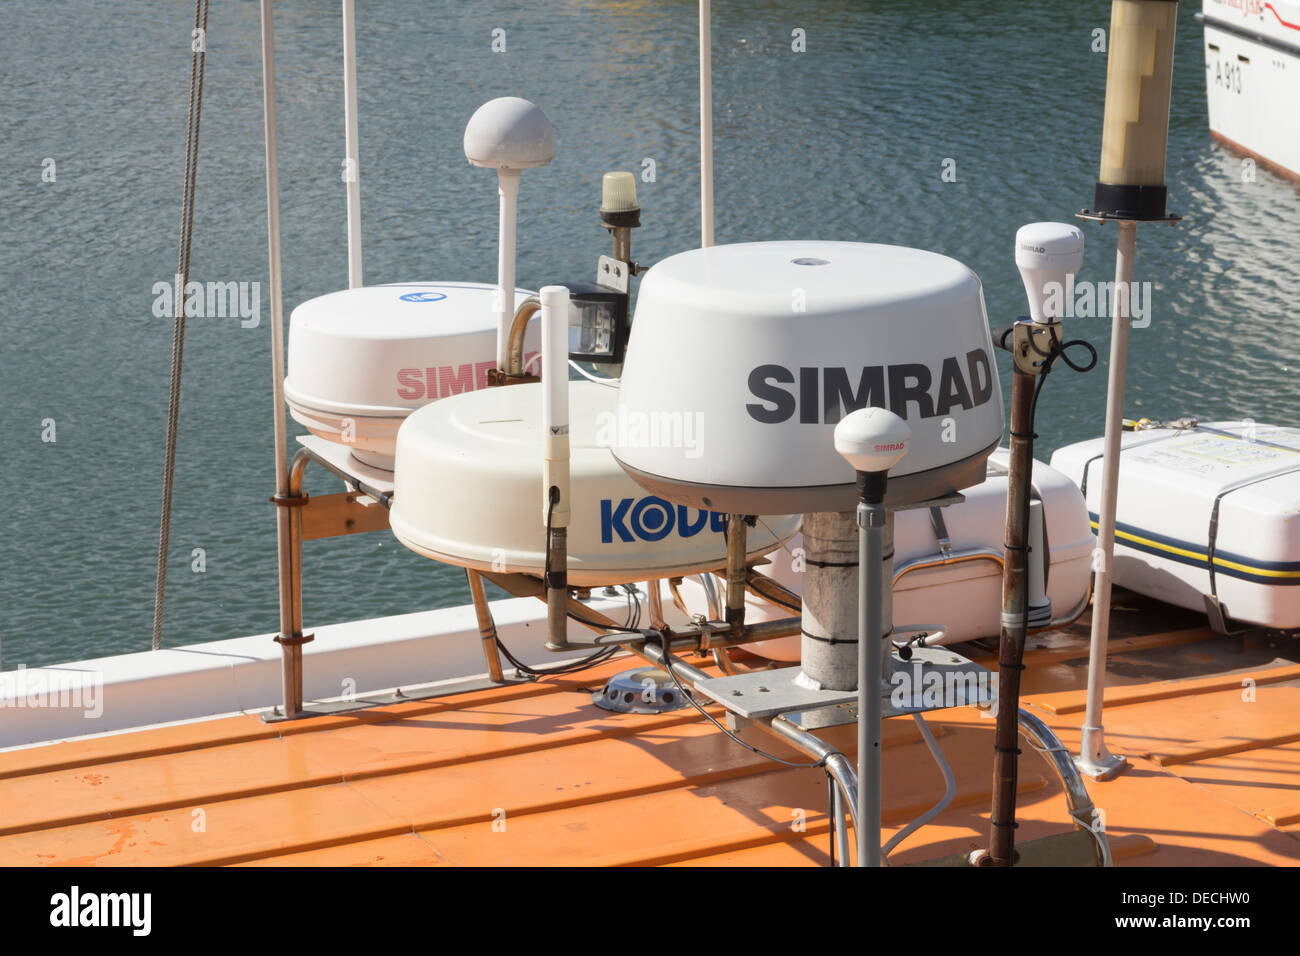 Simrad and Koden radar and marine electronic safety equipment on a boat moored in the harbour at Stonehaven, Scotland. - Stock Image